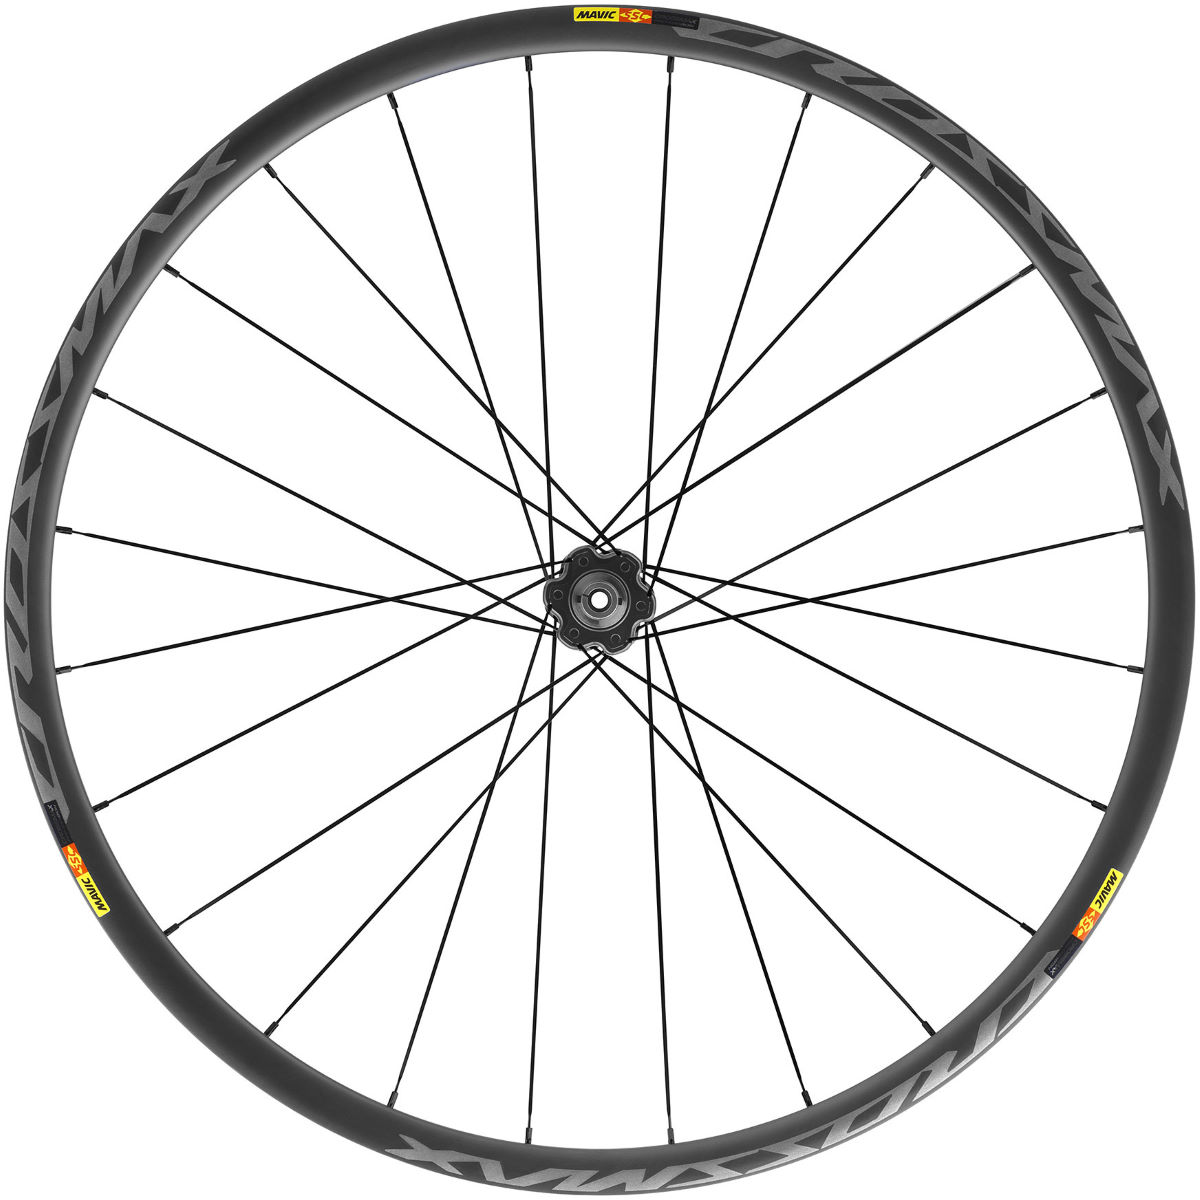 Mavic Xmax Pro Carbon Rear Wheel - Rear wheels